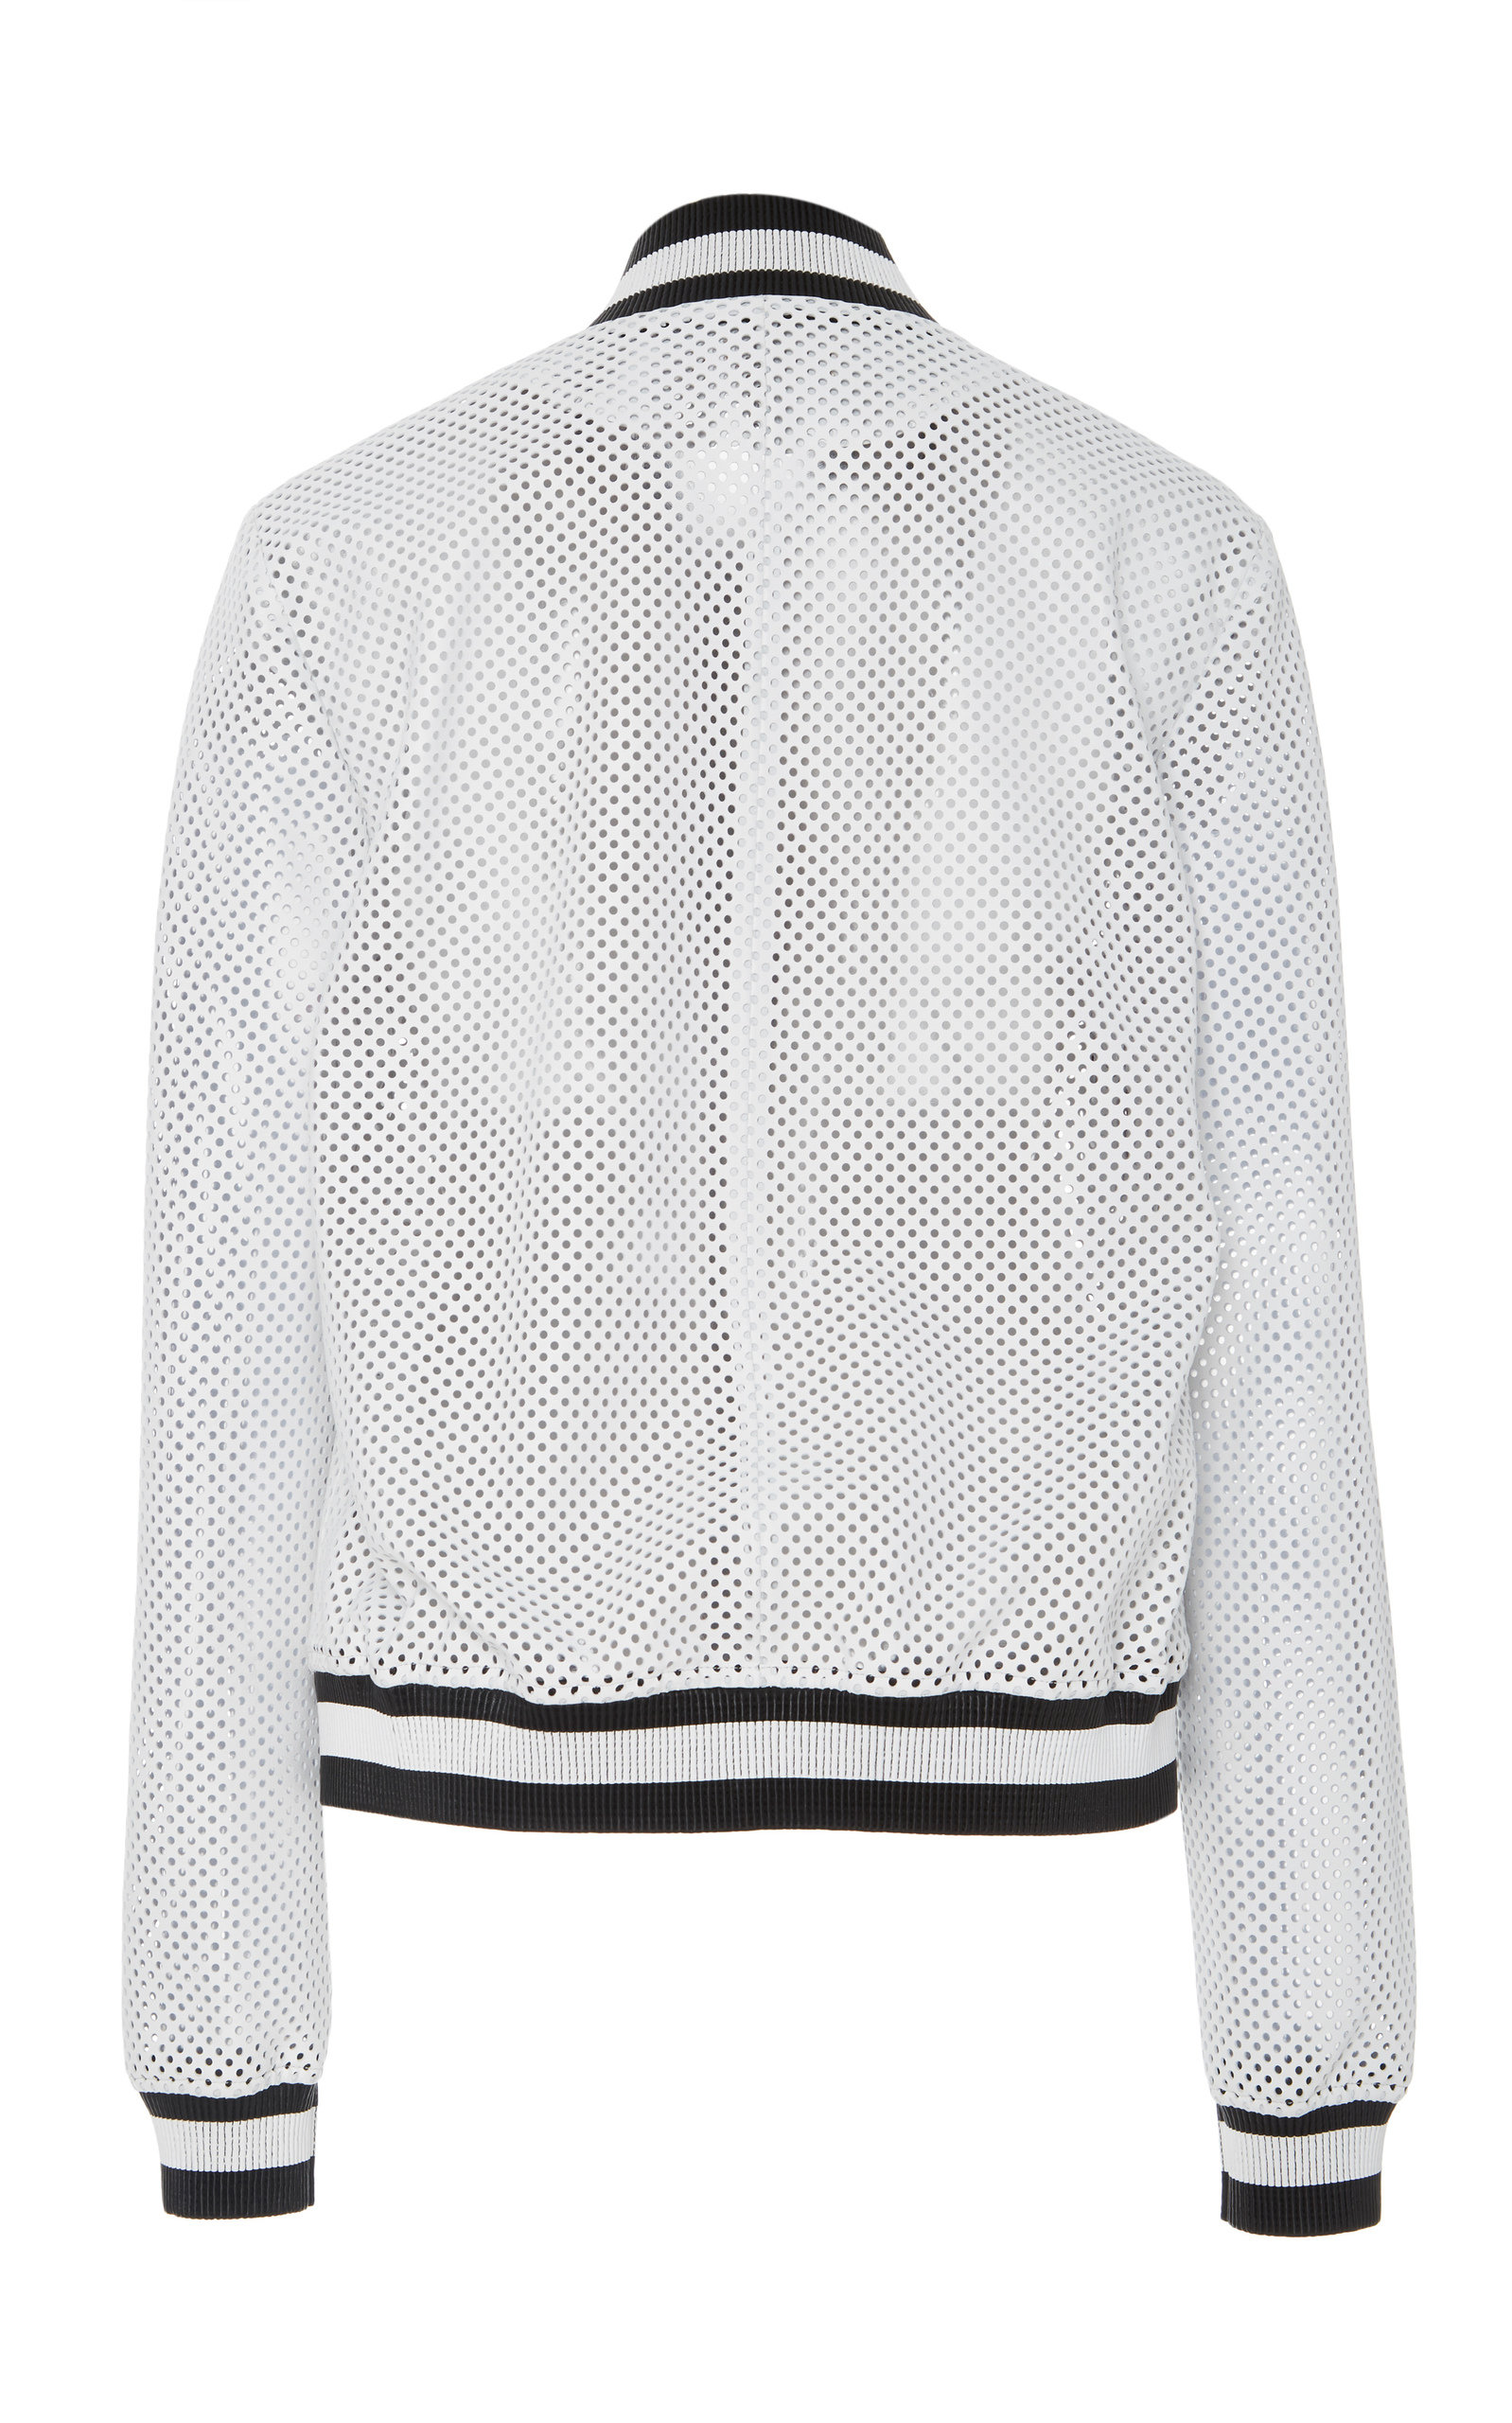 1804279a33c6 Michael Kors CollectionStriped Perforated Leather Bomber Jacket. CLOSE.  Loading. Loading